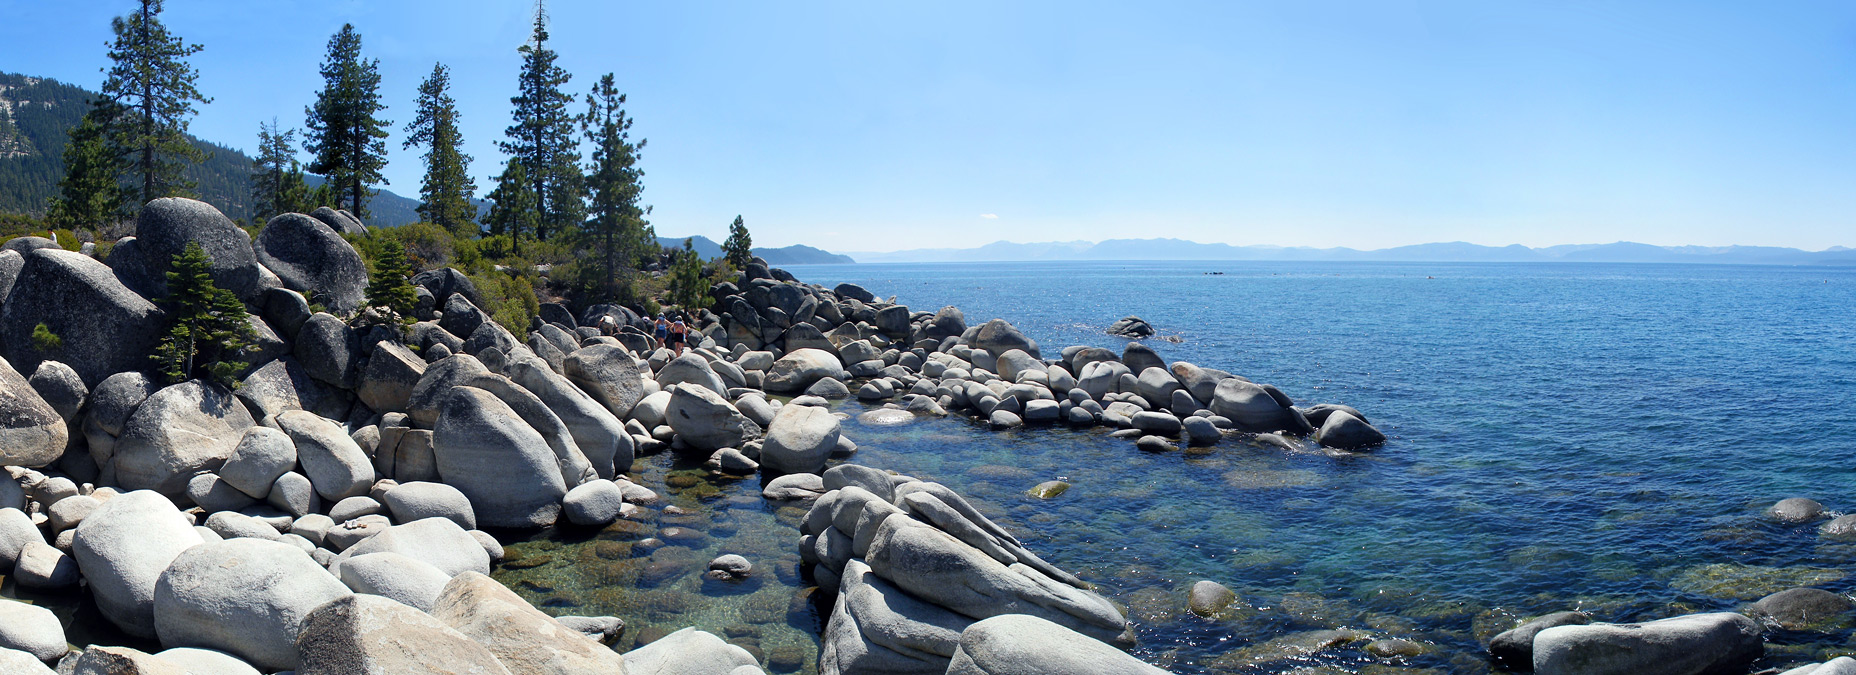 Granite boulders at Sand Point